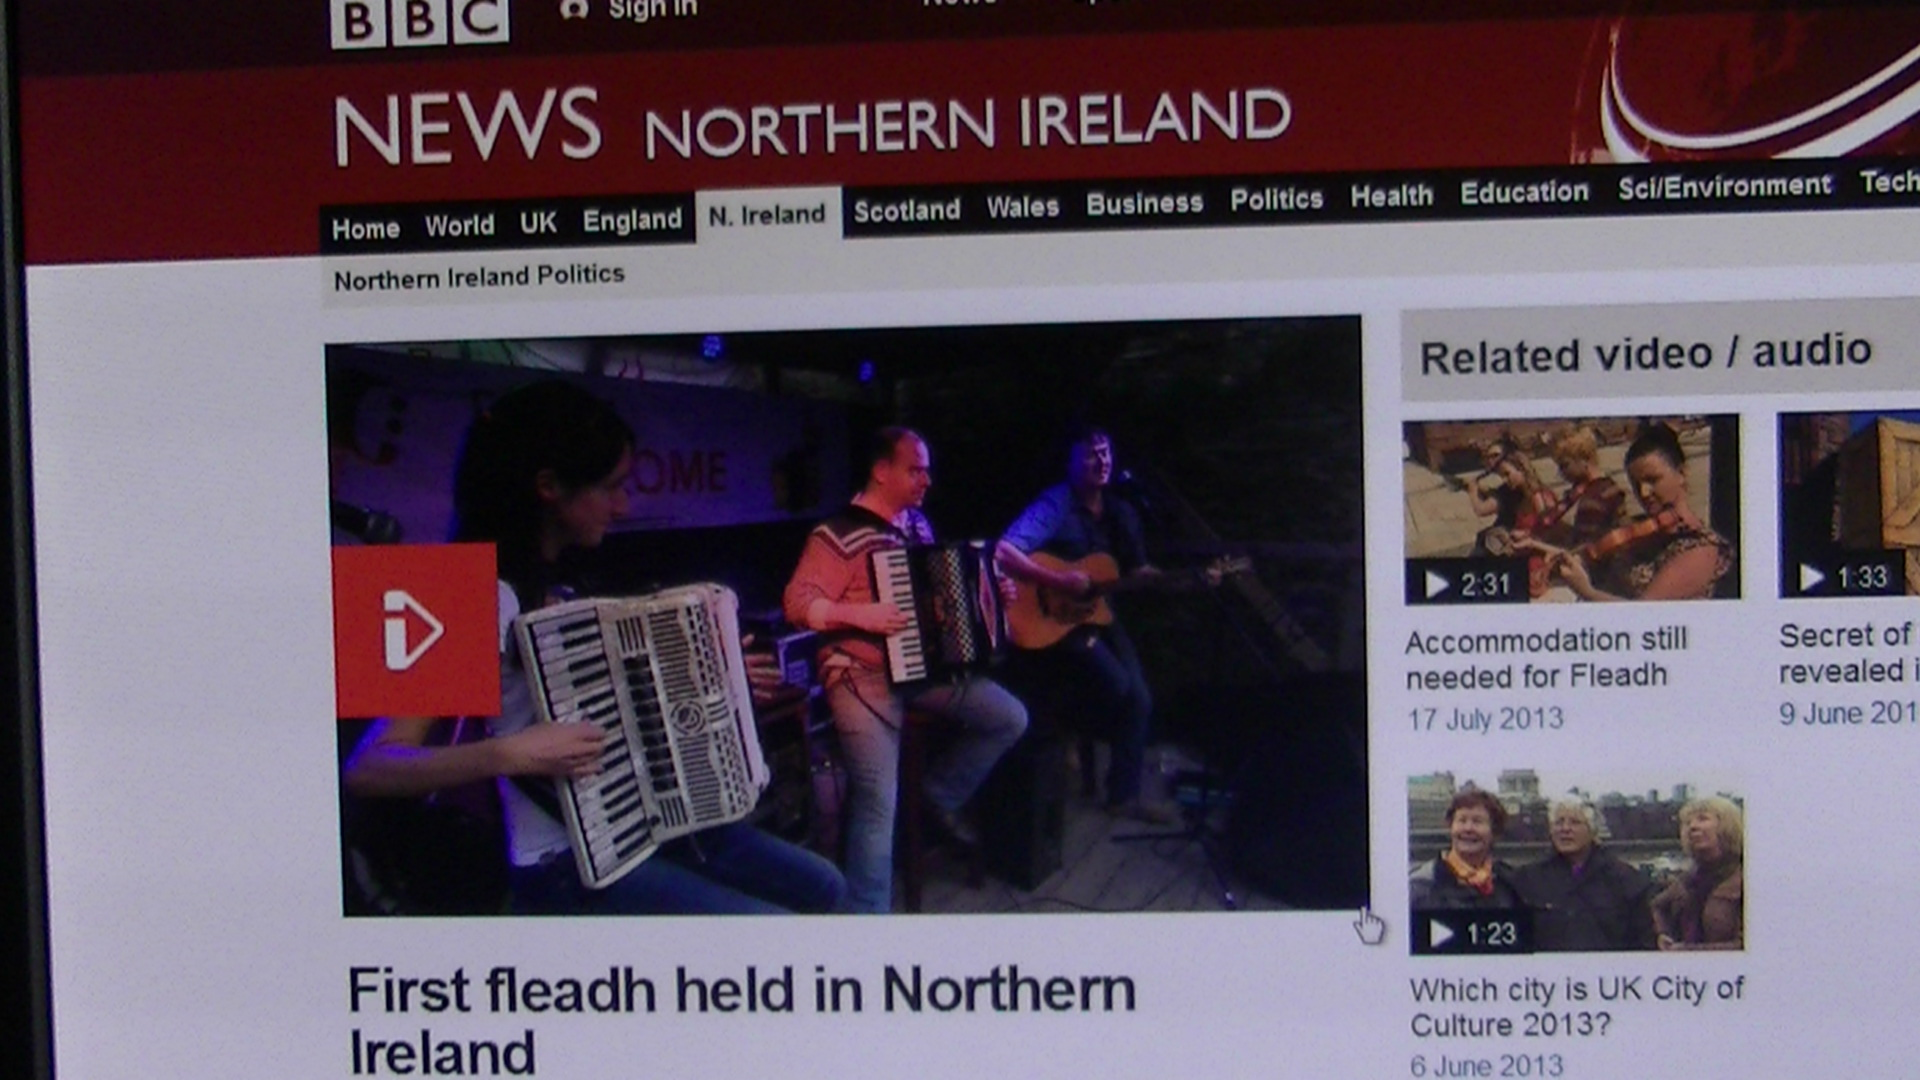 The Fleadh. Missing Time on the BBC News!